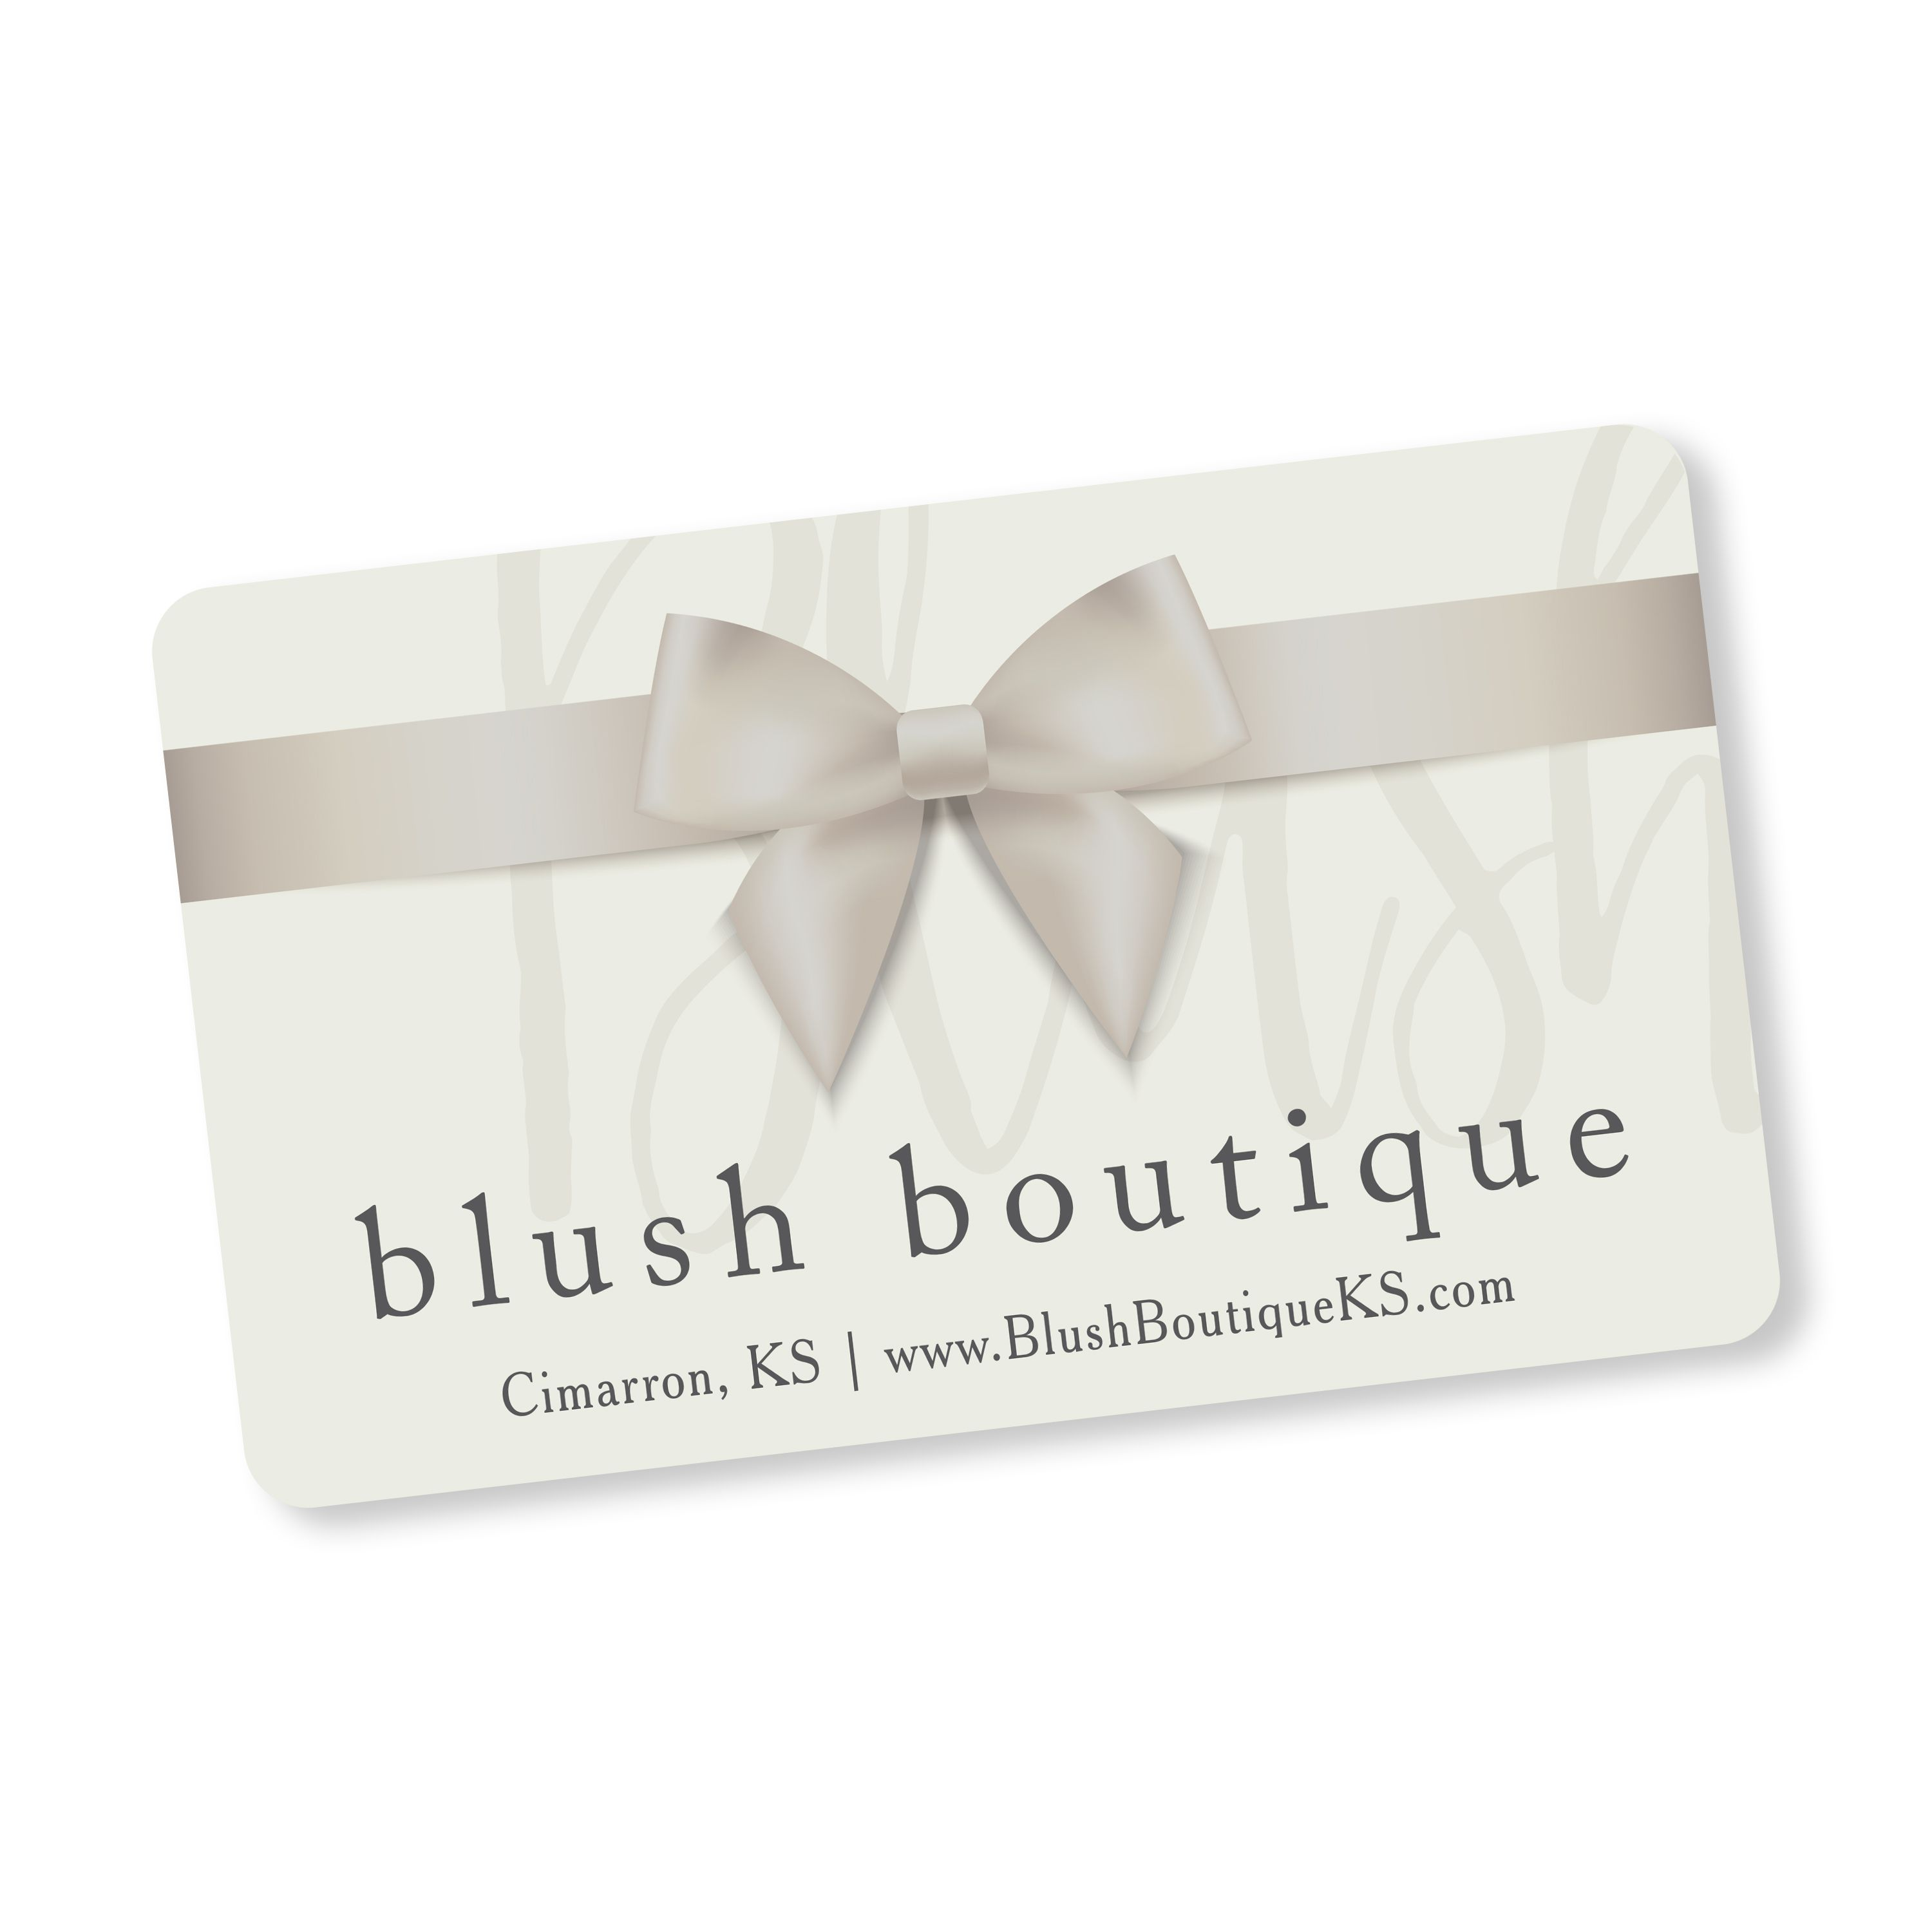 Blush Boutique gift cards always make the perfect gift!